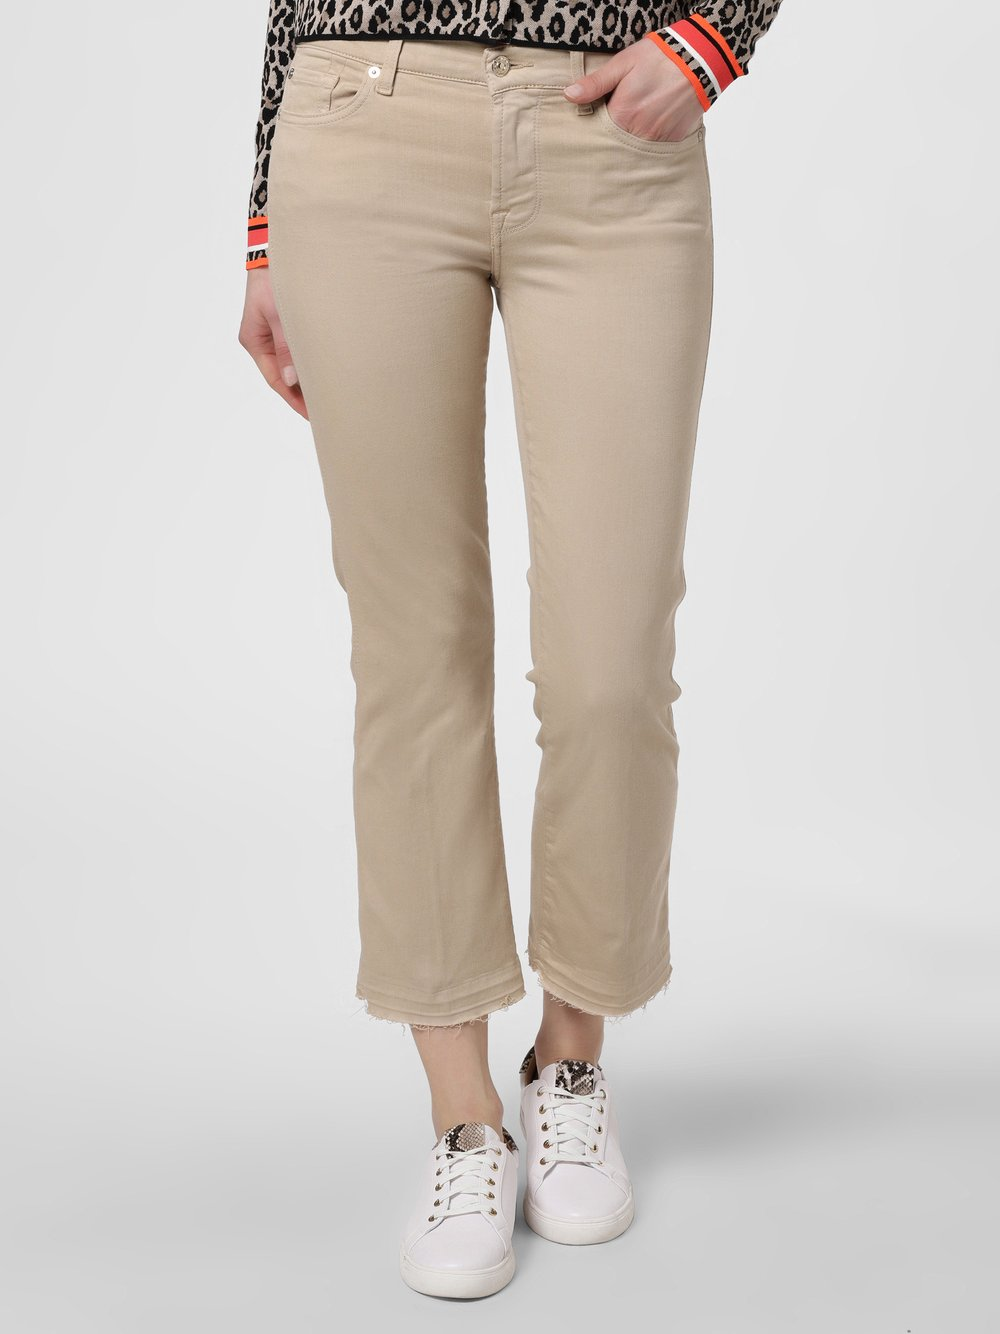 7 For All Mankind – Jeansy damskie – The Ankle Flare, beżowy Van Graaf 471093-0002-00270